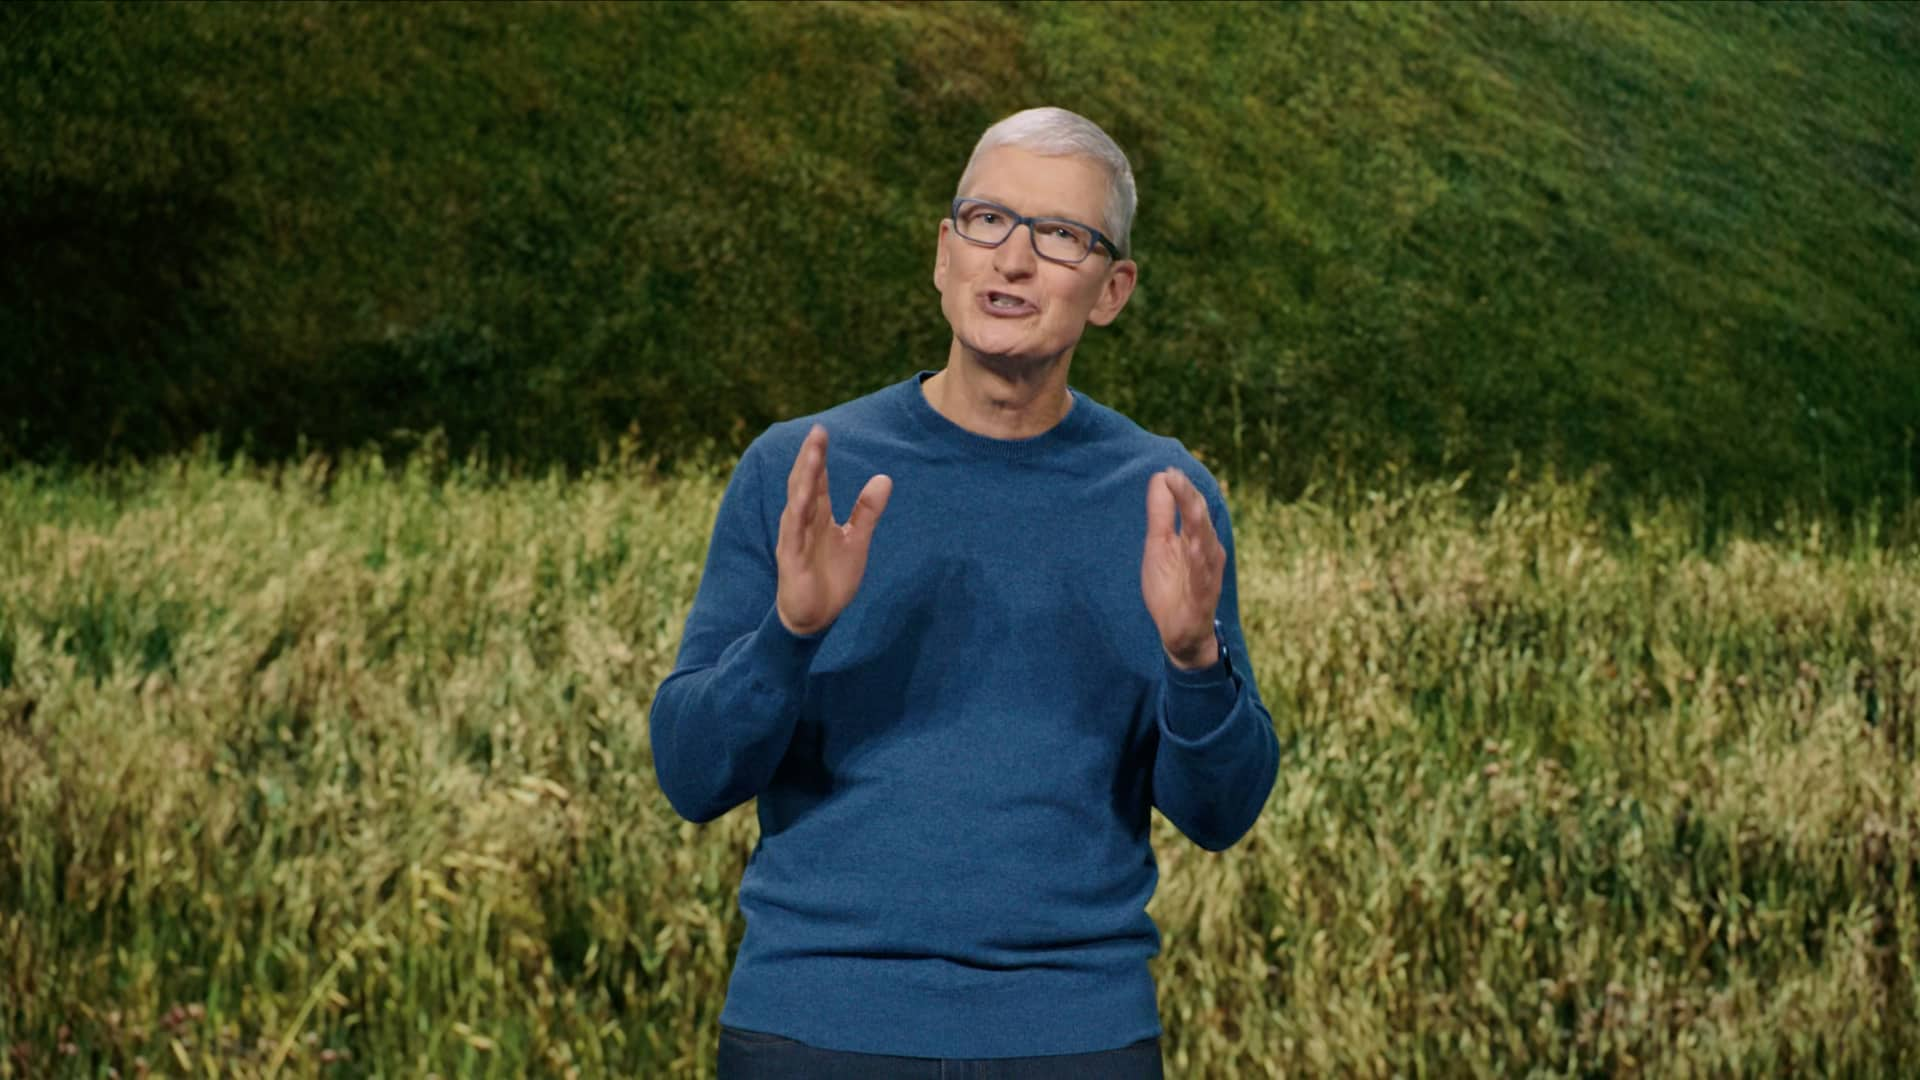 """A still image taken from Apple's September 2021 """"California Streaming"""" event video which shows CEO Tim Cook standing on stage and talking enthusiastically while gesturing with his hands"""